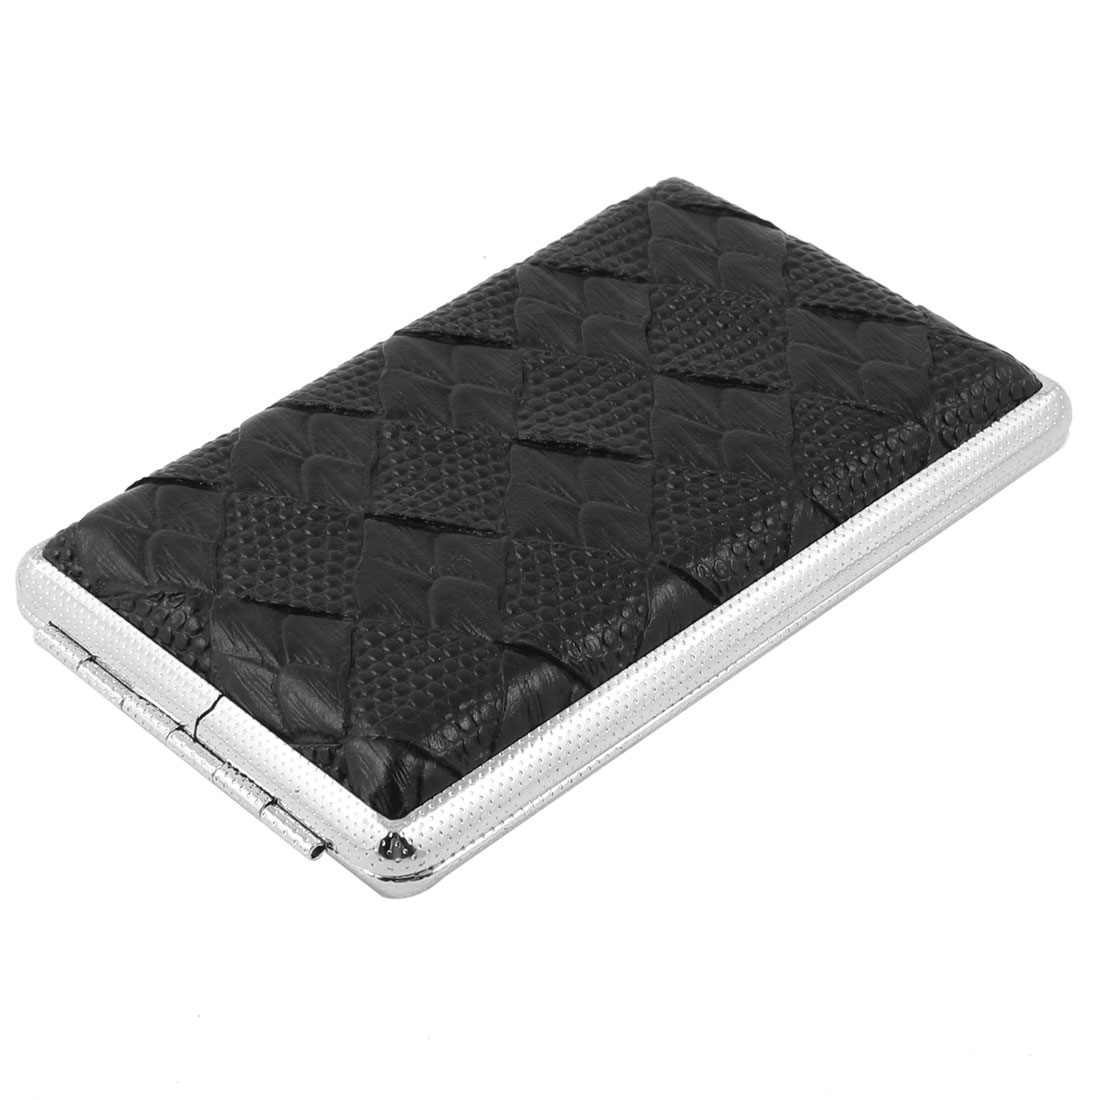 Men Rhombus Print Black Faux Leather Coated Metallic Cigarette Box